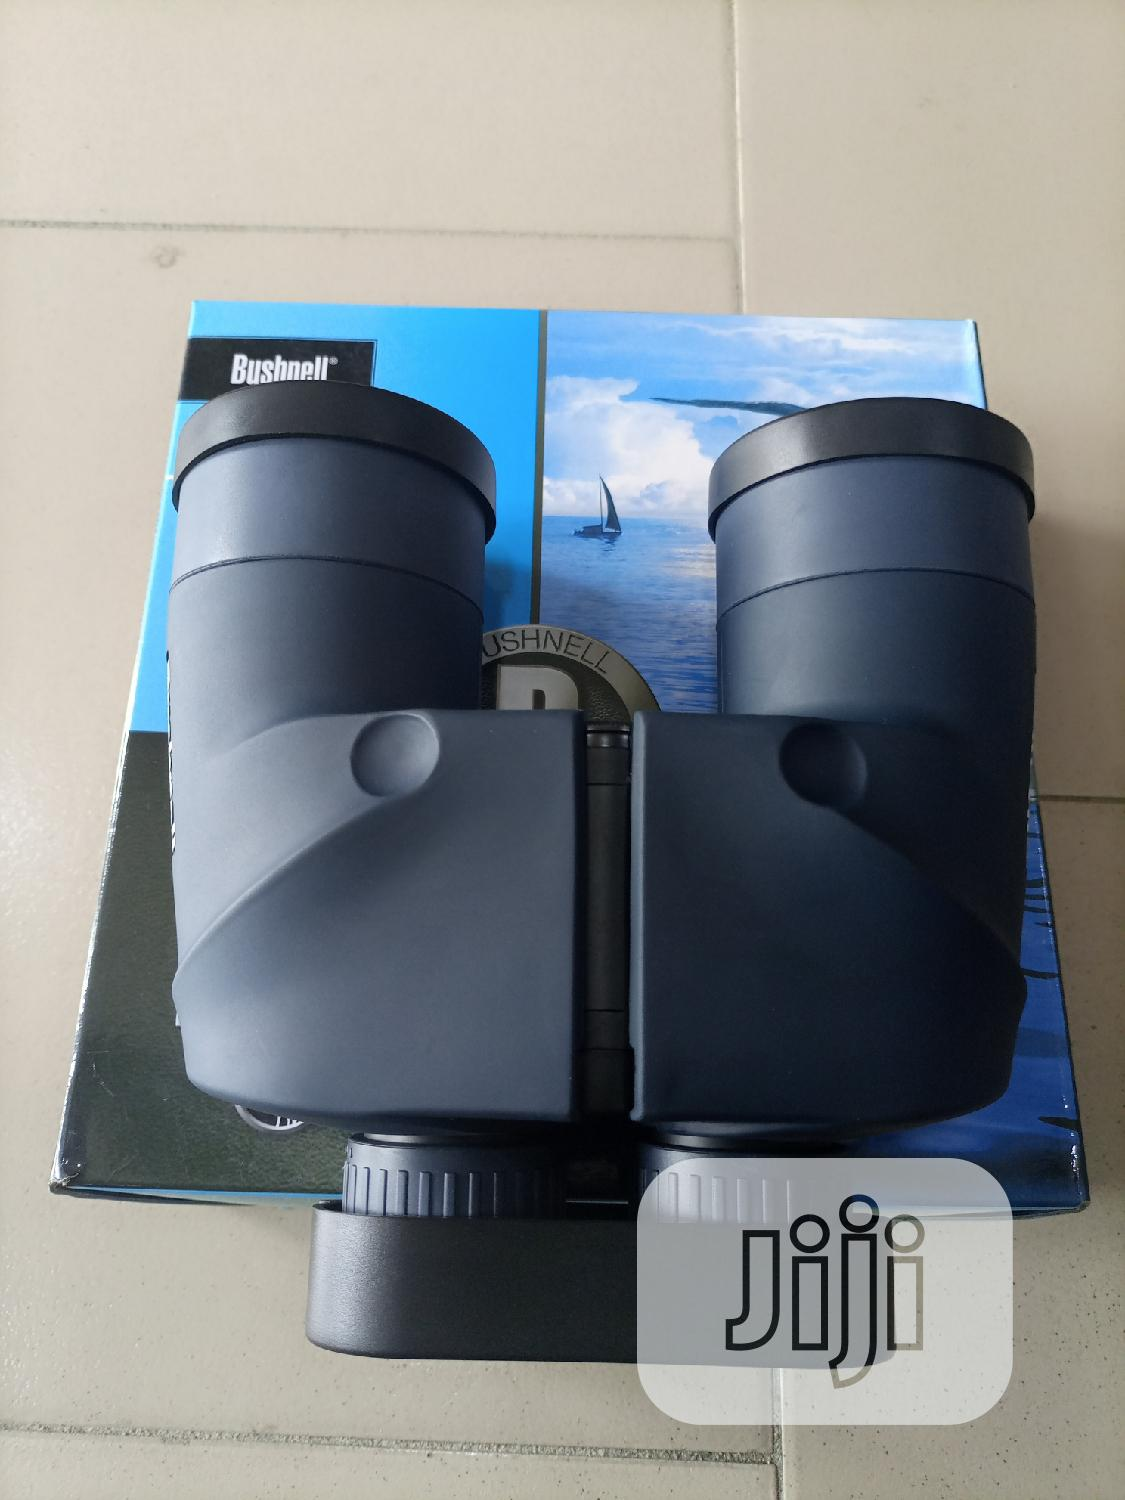 Bushnell ®Marine Binocular (7x50mm) | Camping Gear for sale in Port-Harcourt, Rivers State, Nigeria